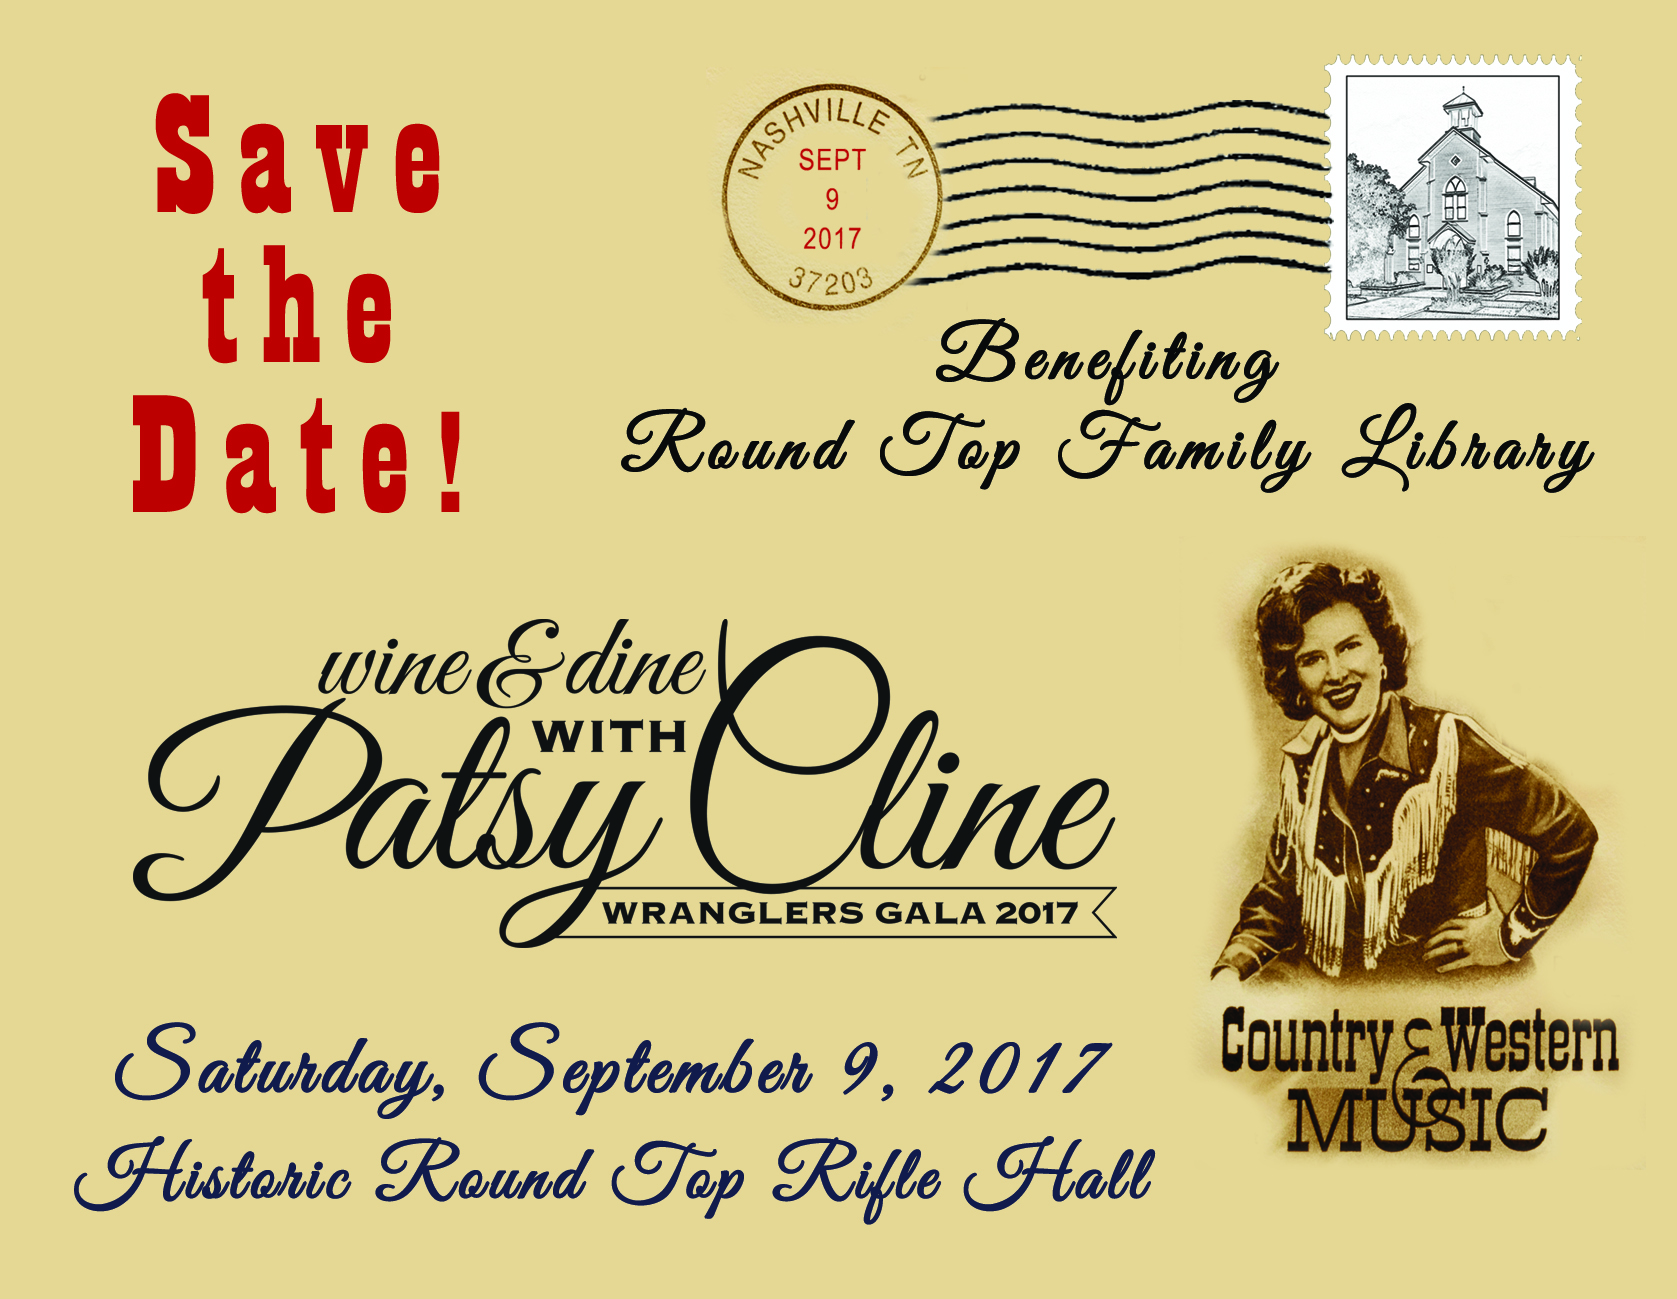 Wrangler Gala 2017 - wine & dine with Patsy Cline - Round Top Family Library